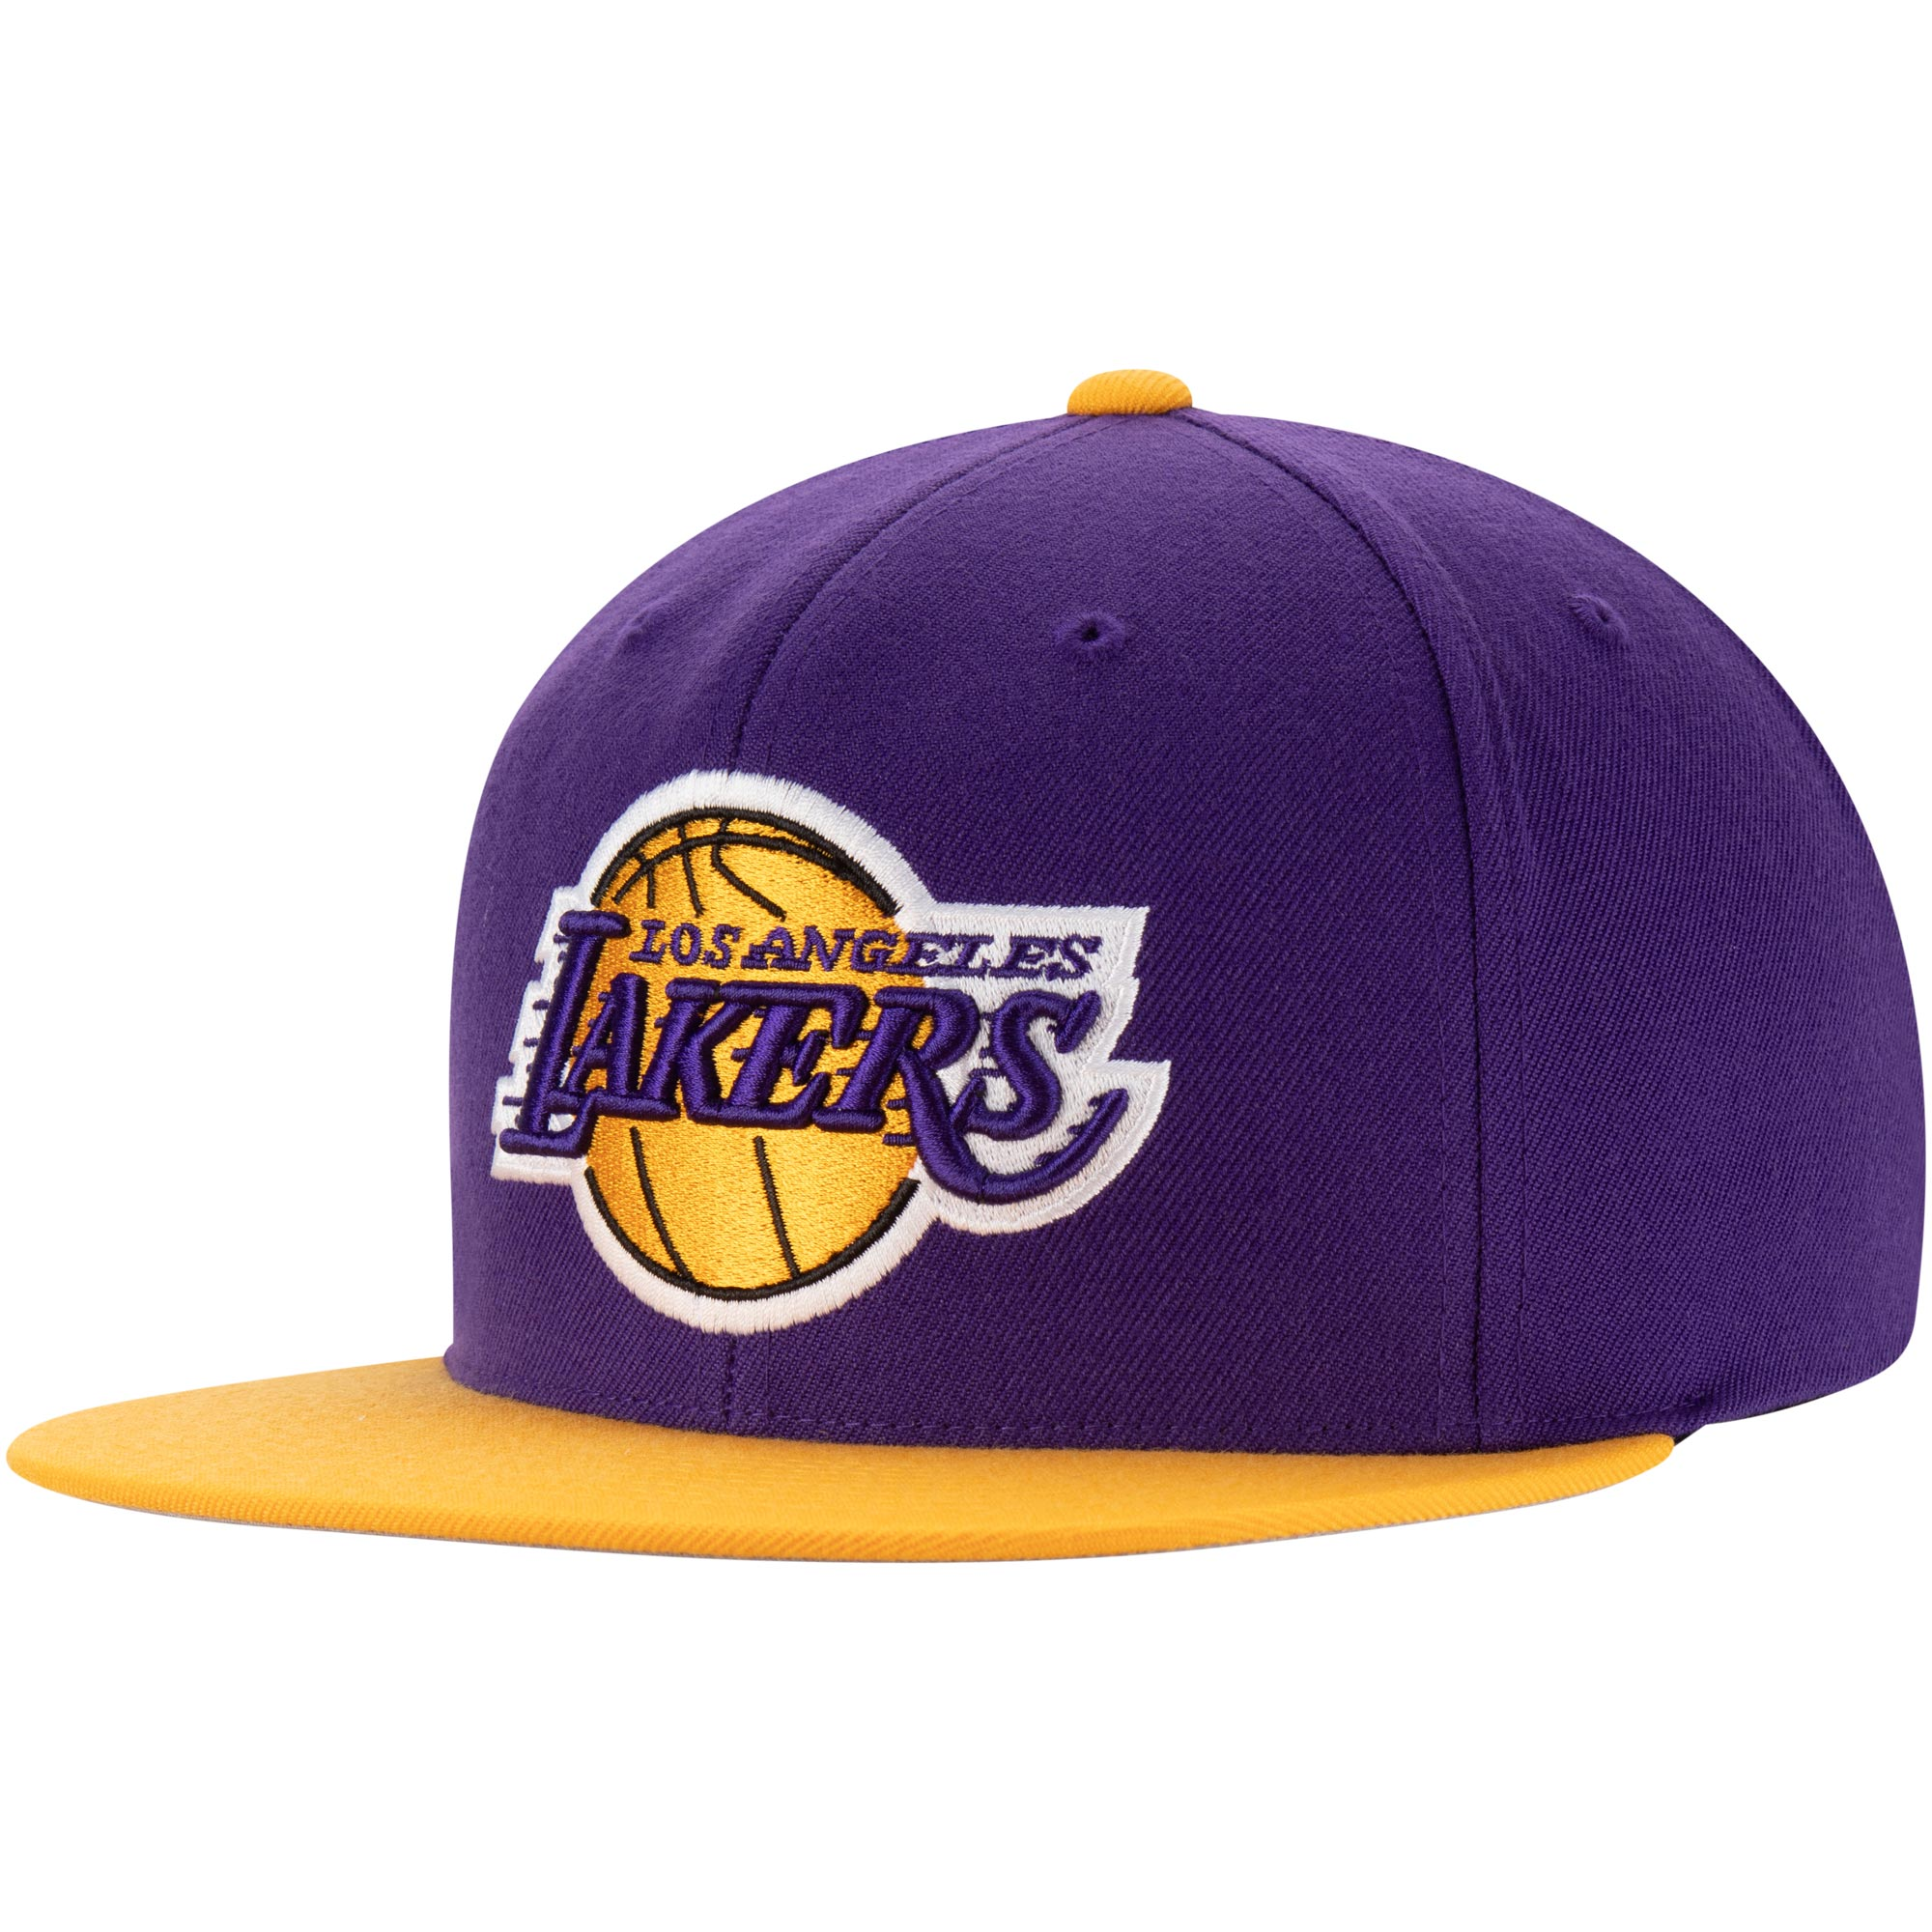 Los Angeles Lakers Mitchell & Ness Two-Tone Wool Snapback Hat - Purple/Gold